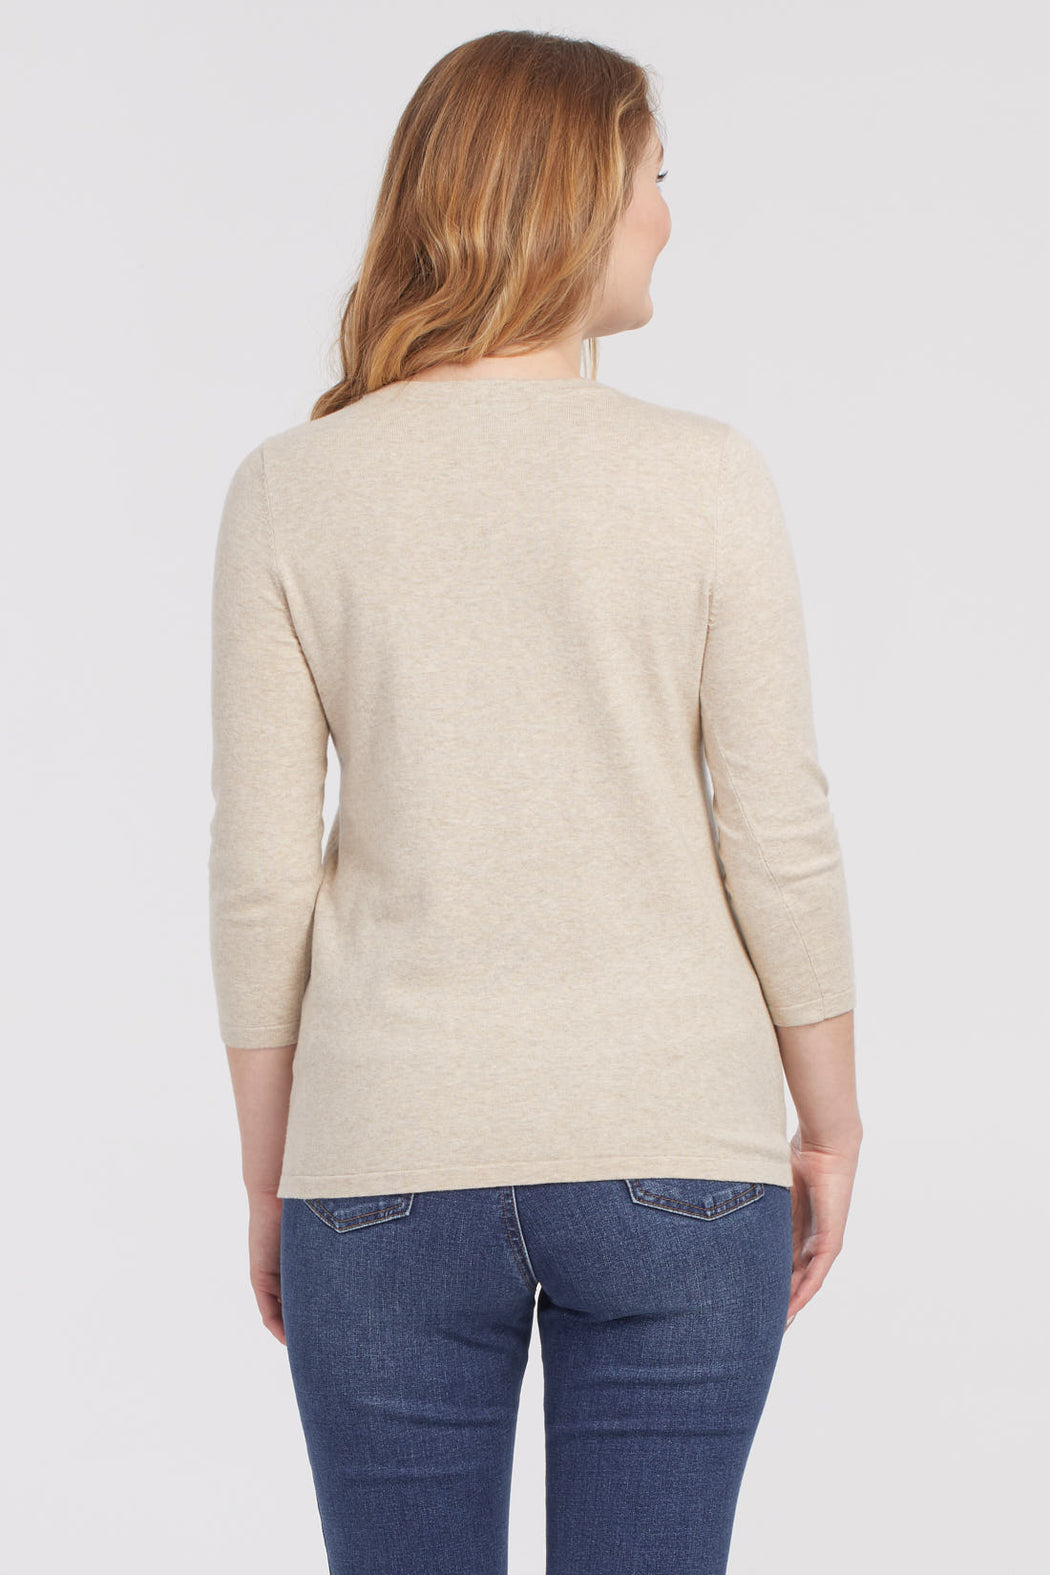 This cozy 3/4 length sleeve cotton blend sweater is all about the basics. This perfect weight crew neck is a simple piece that can mix and match with all of your seasonal staples!  80% Cotton 20% Spandex- 80% Cotton- 3/4 Sleeve